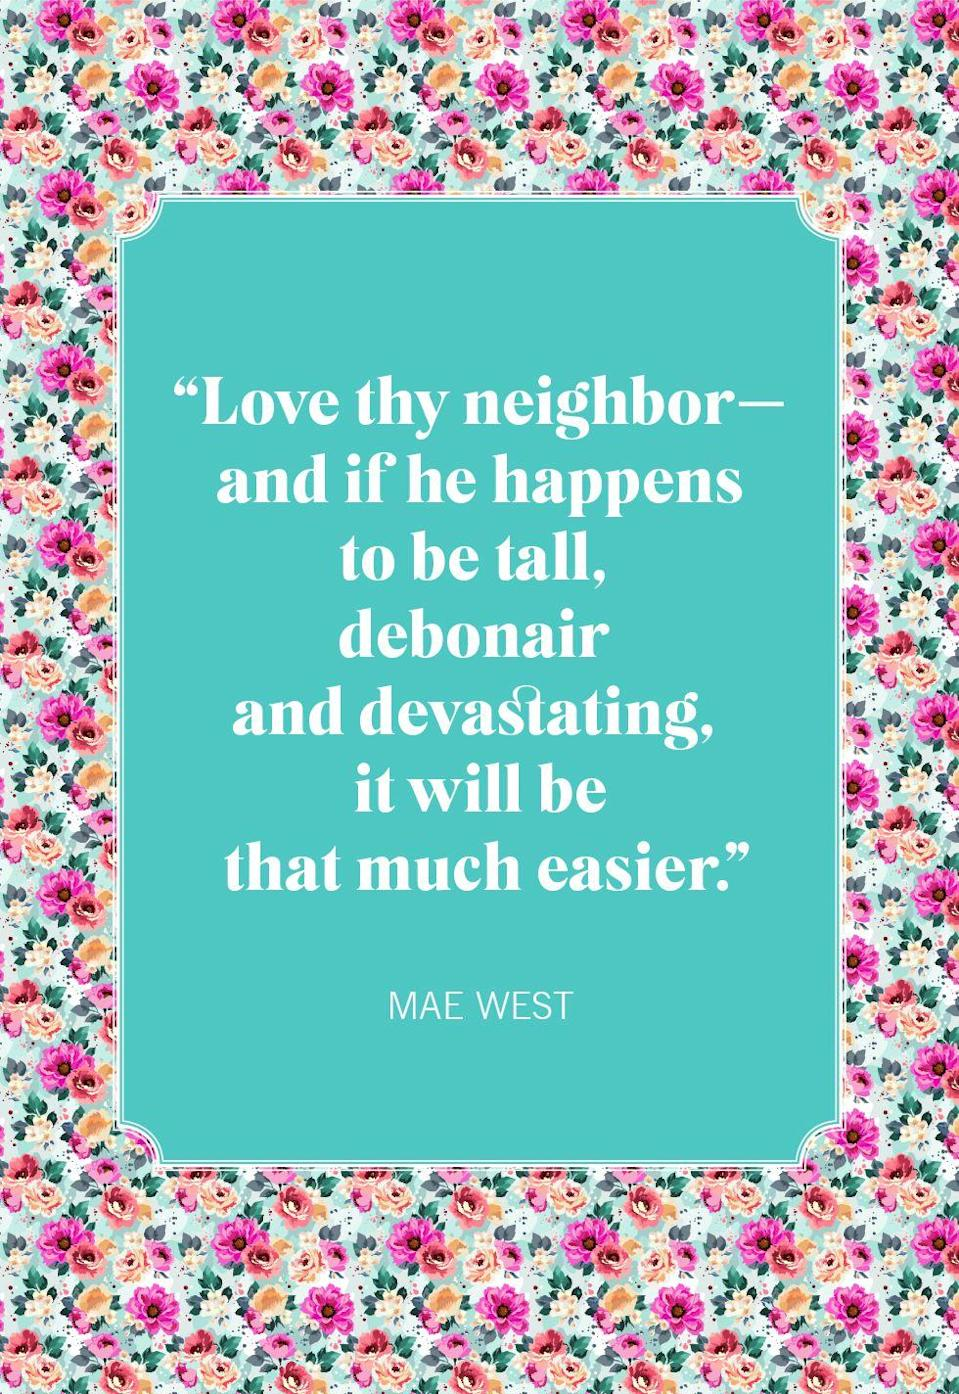 "<p>""Love thy neighbor—and if he happens to be tall, debonair and devastating, it will be that much easier.""</p>"